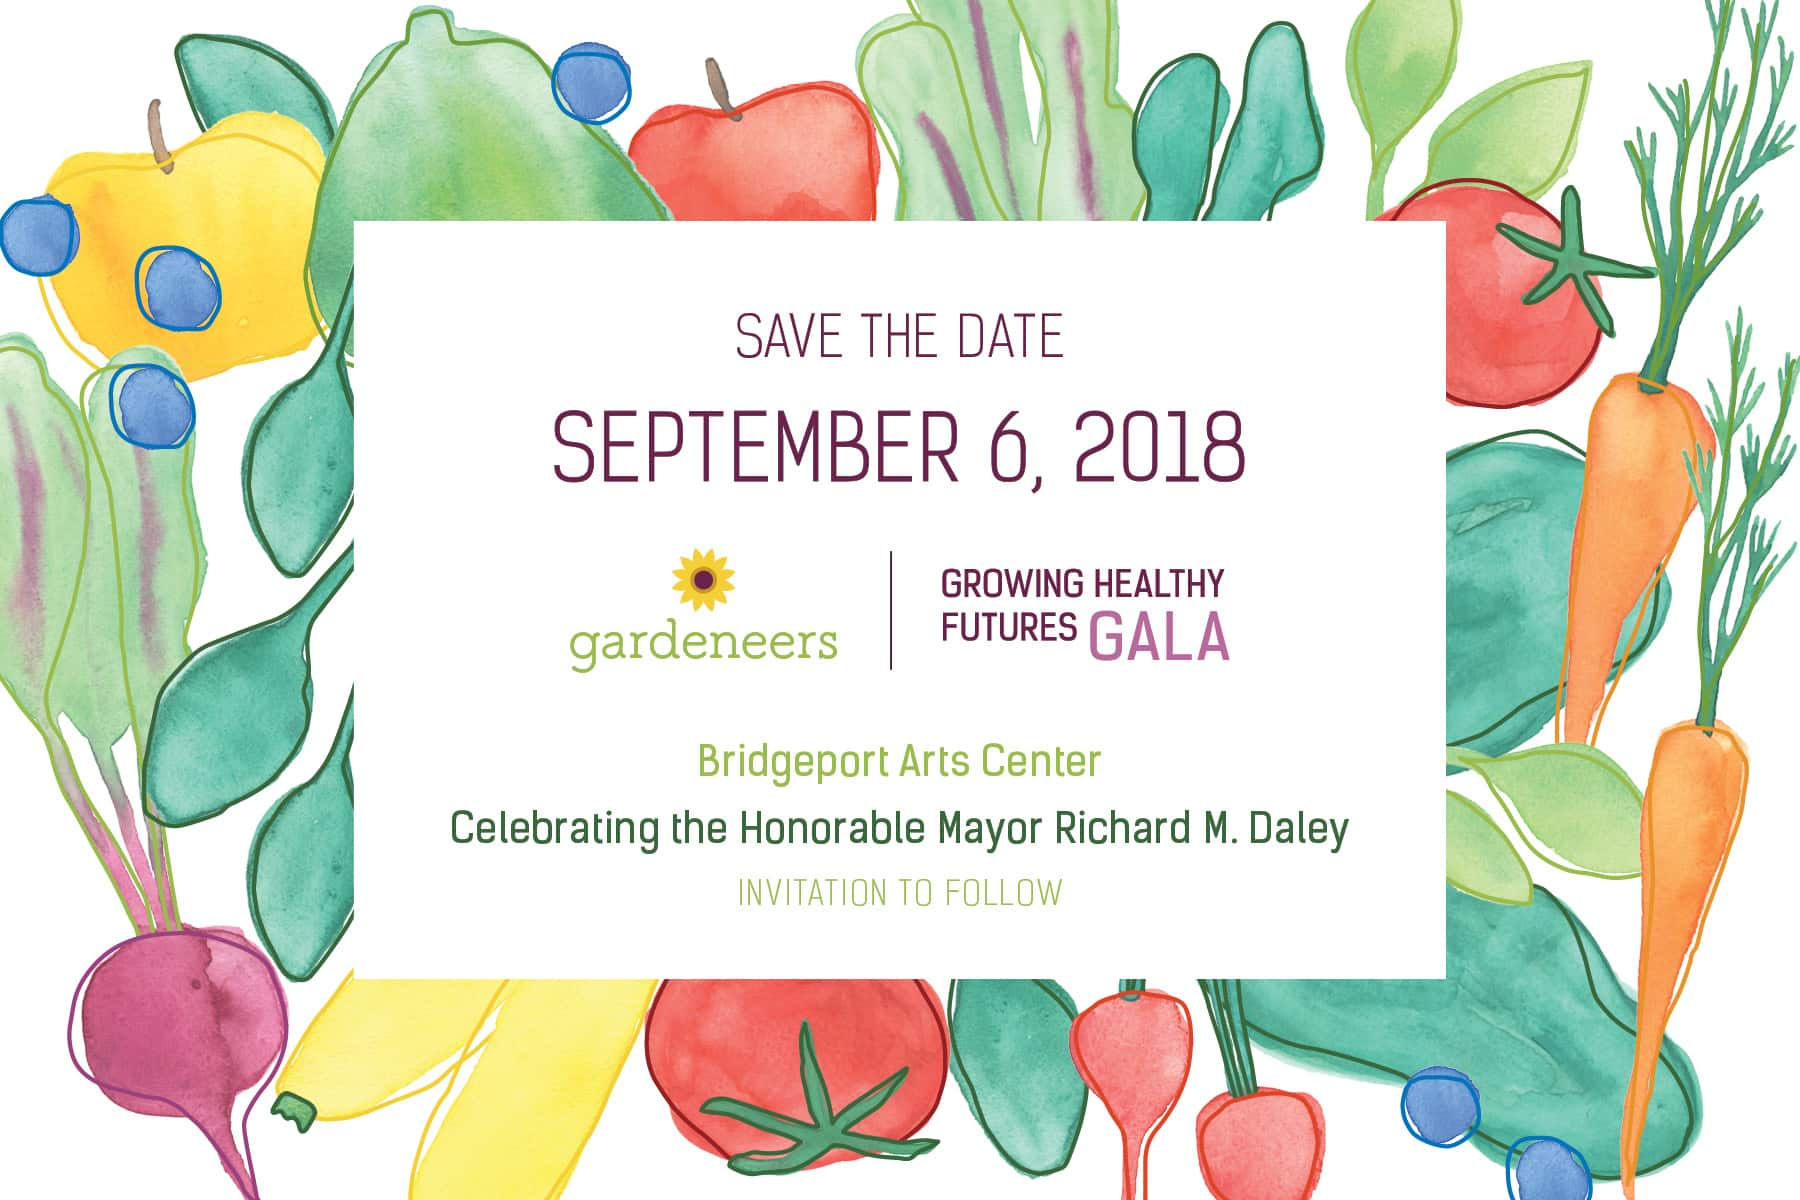 Gardeneers_SaveTheDate_Gala2018_4 (1)